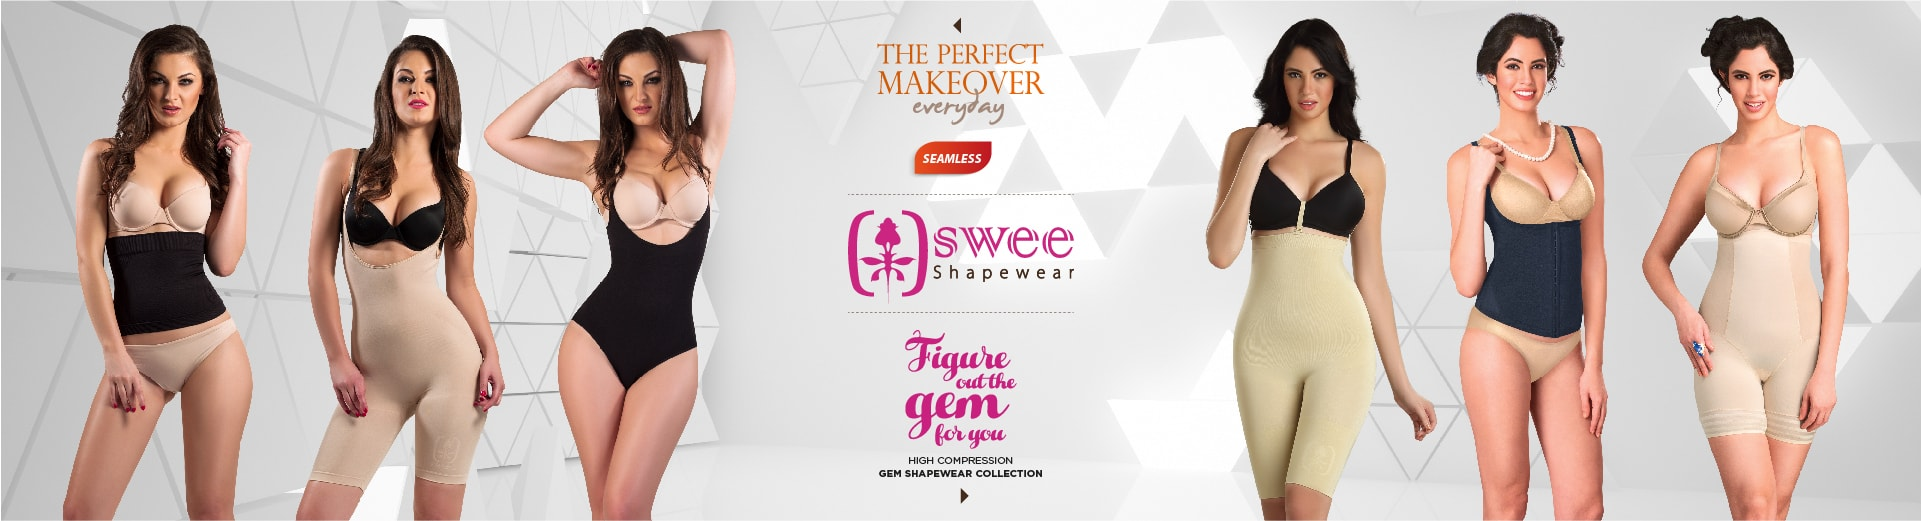 Swee Shapewear Women